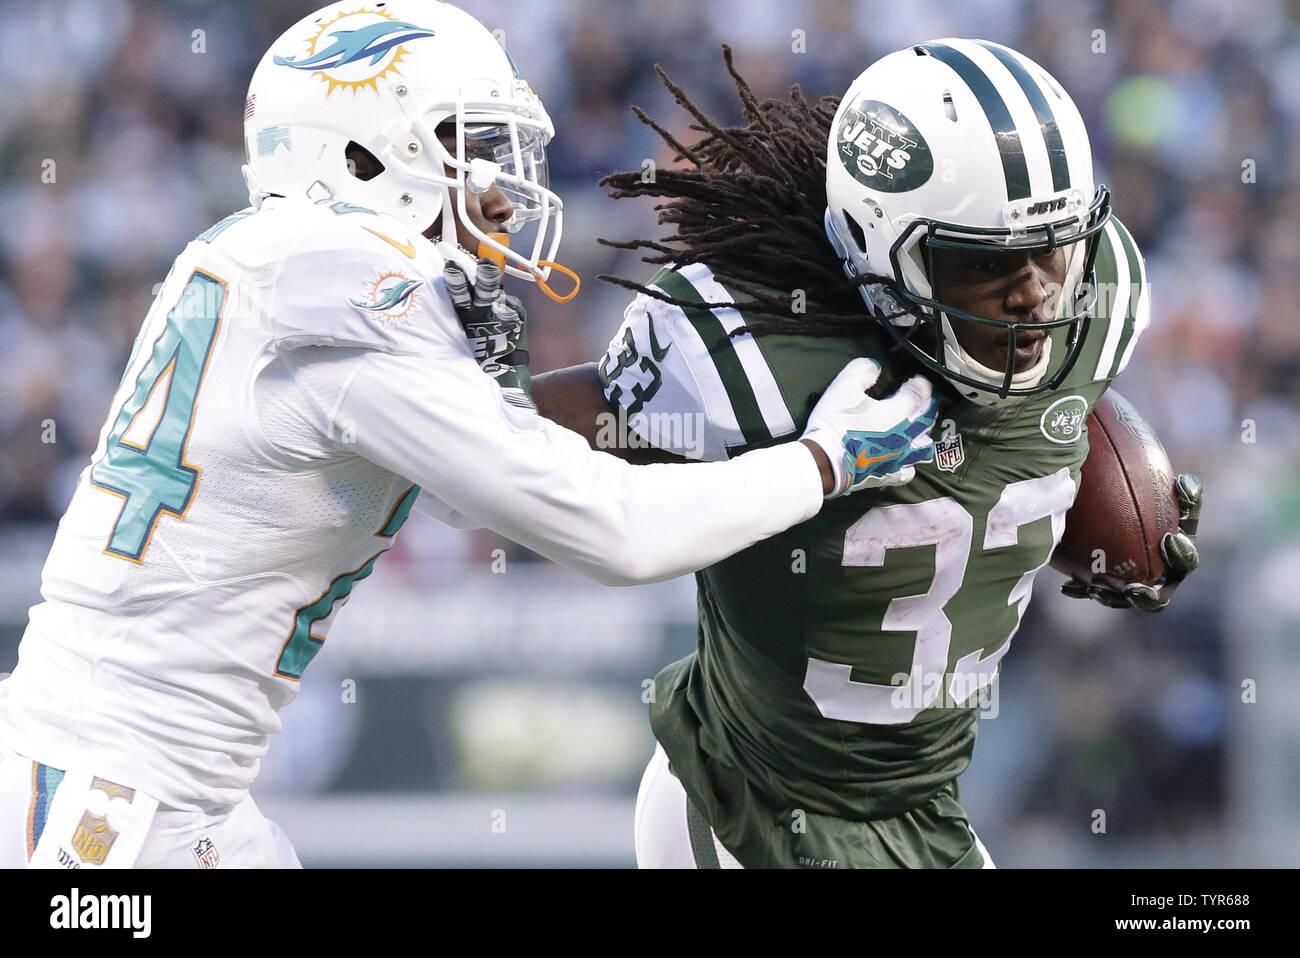 Chris Ivory High Resolution Stock Photography and Images - Alamy